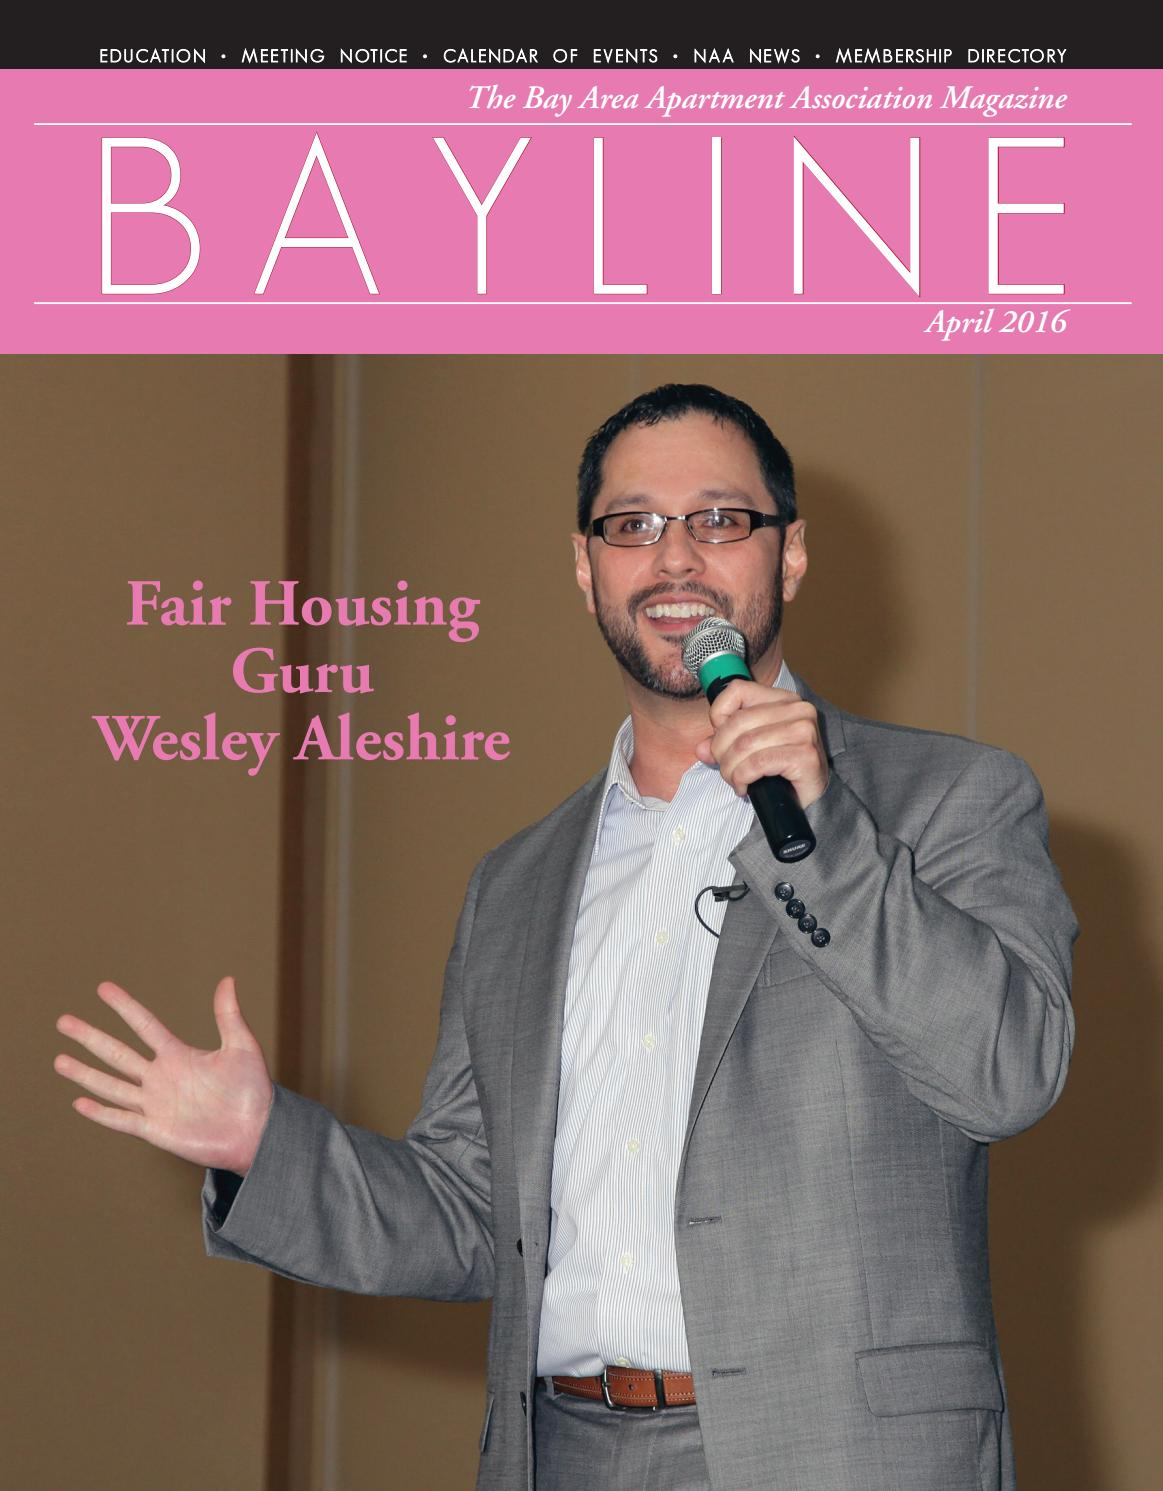 Bayline April 2016 by Bay Area Apartment Association - issuu